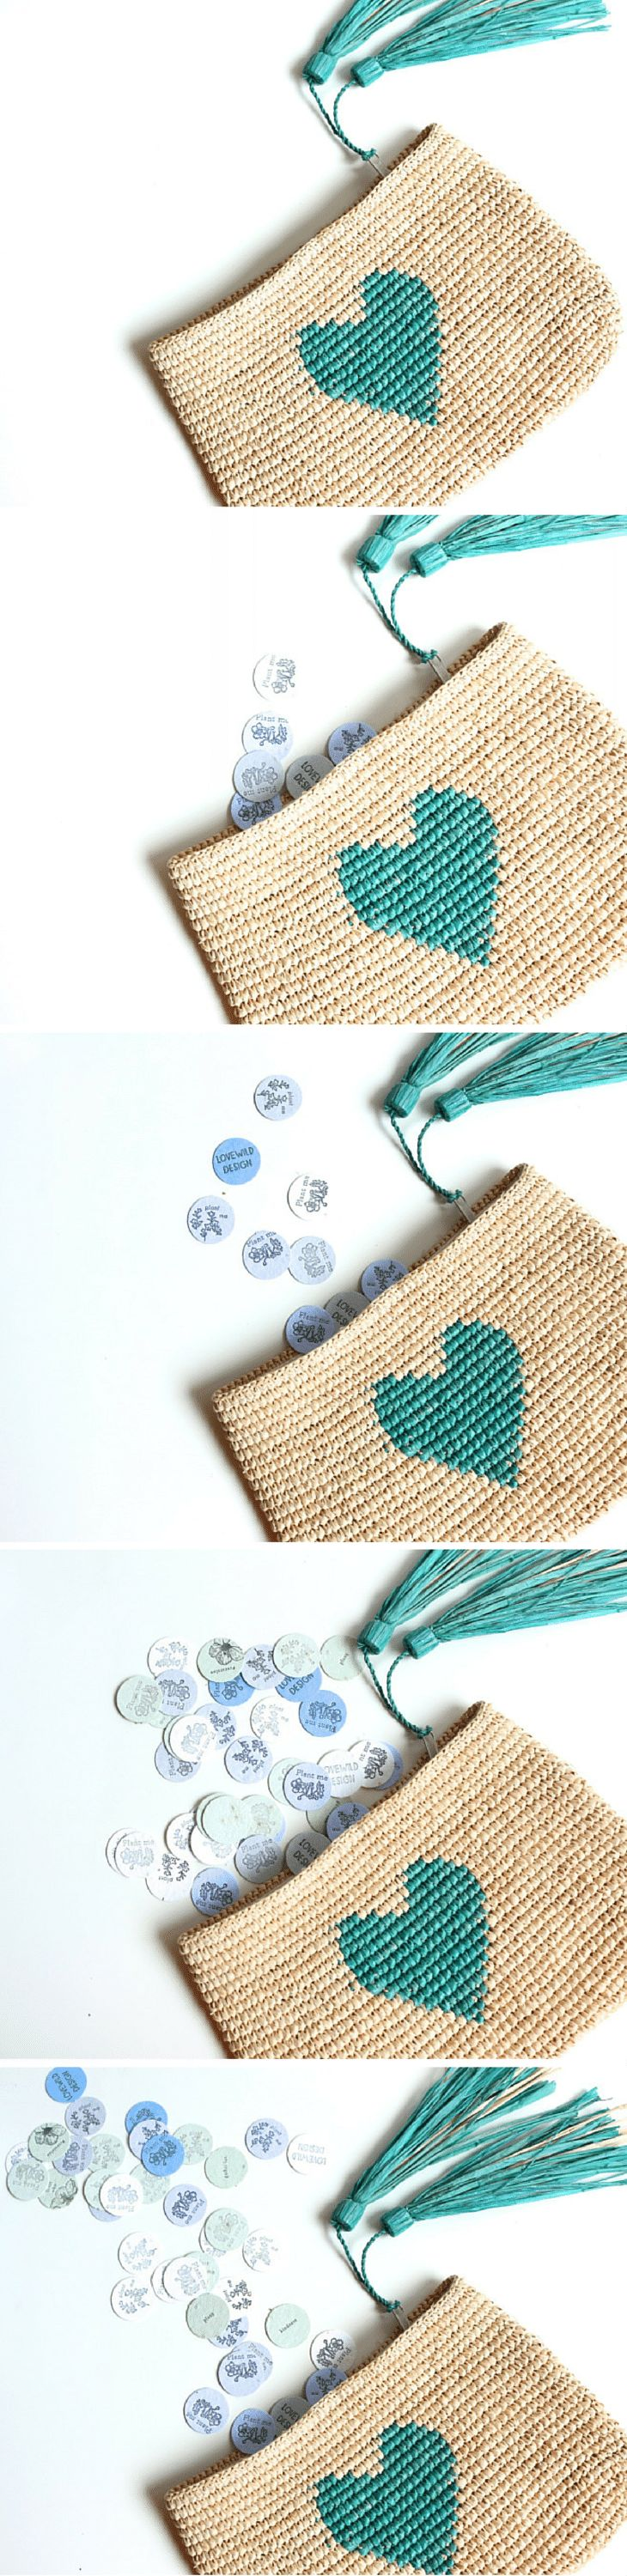 this little heart clutch would be a great gift for the bride or bridesmaids! use code LUVJEN to earn $10 off your purchase of $100 or more